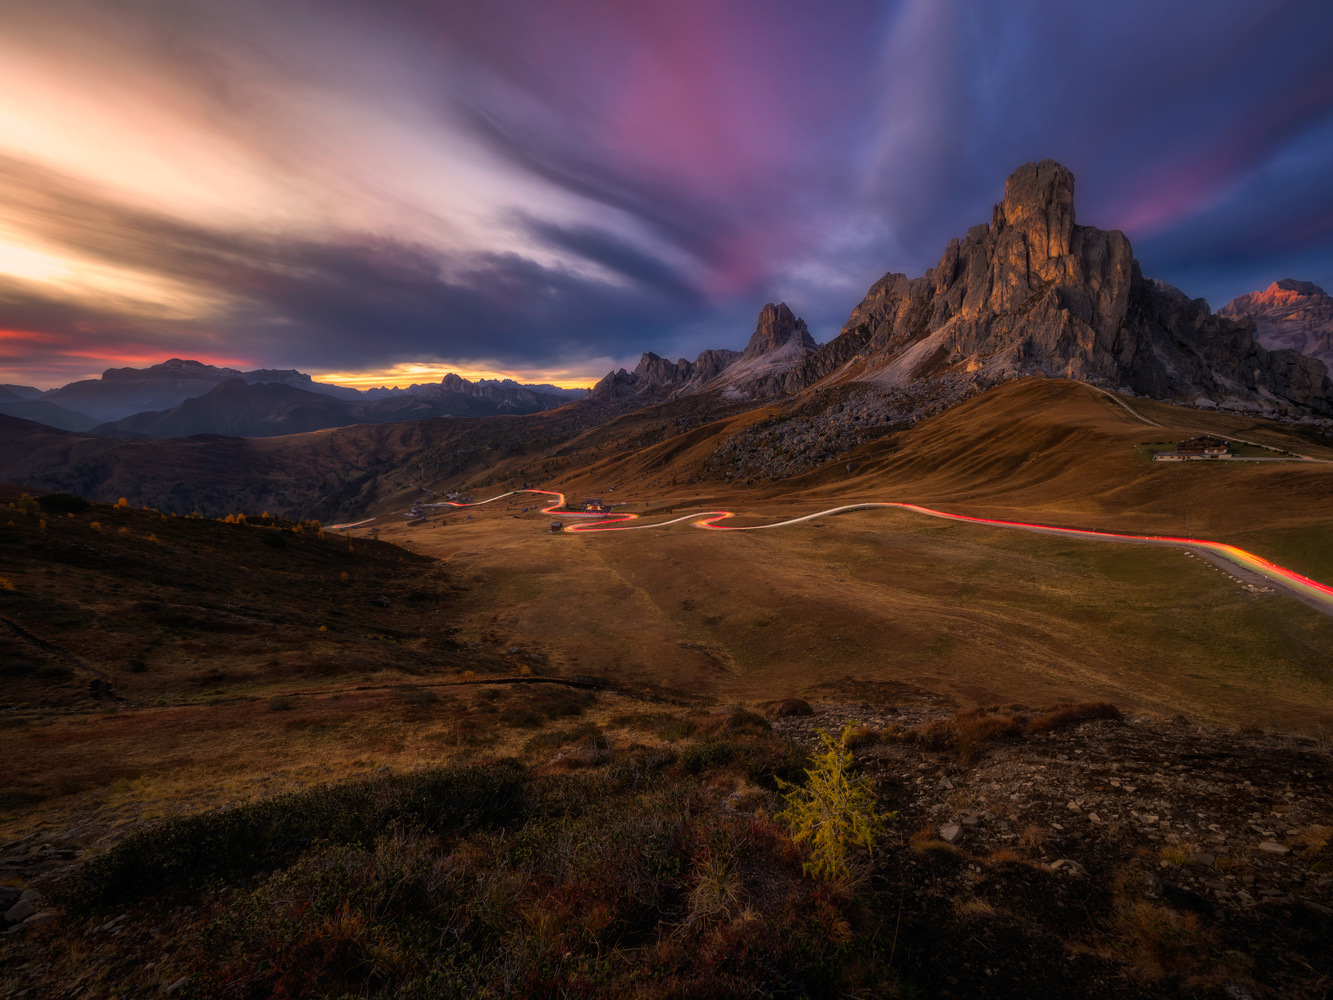 The lord of the Dolomites by Michele Buttazzoni